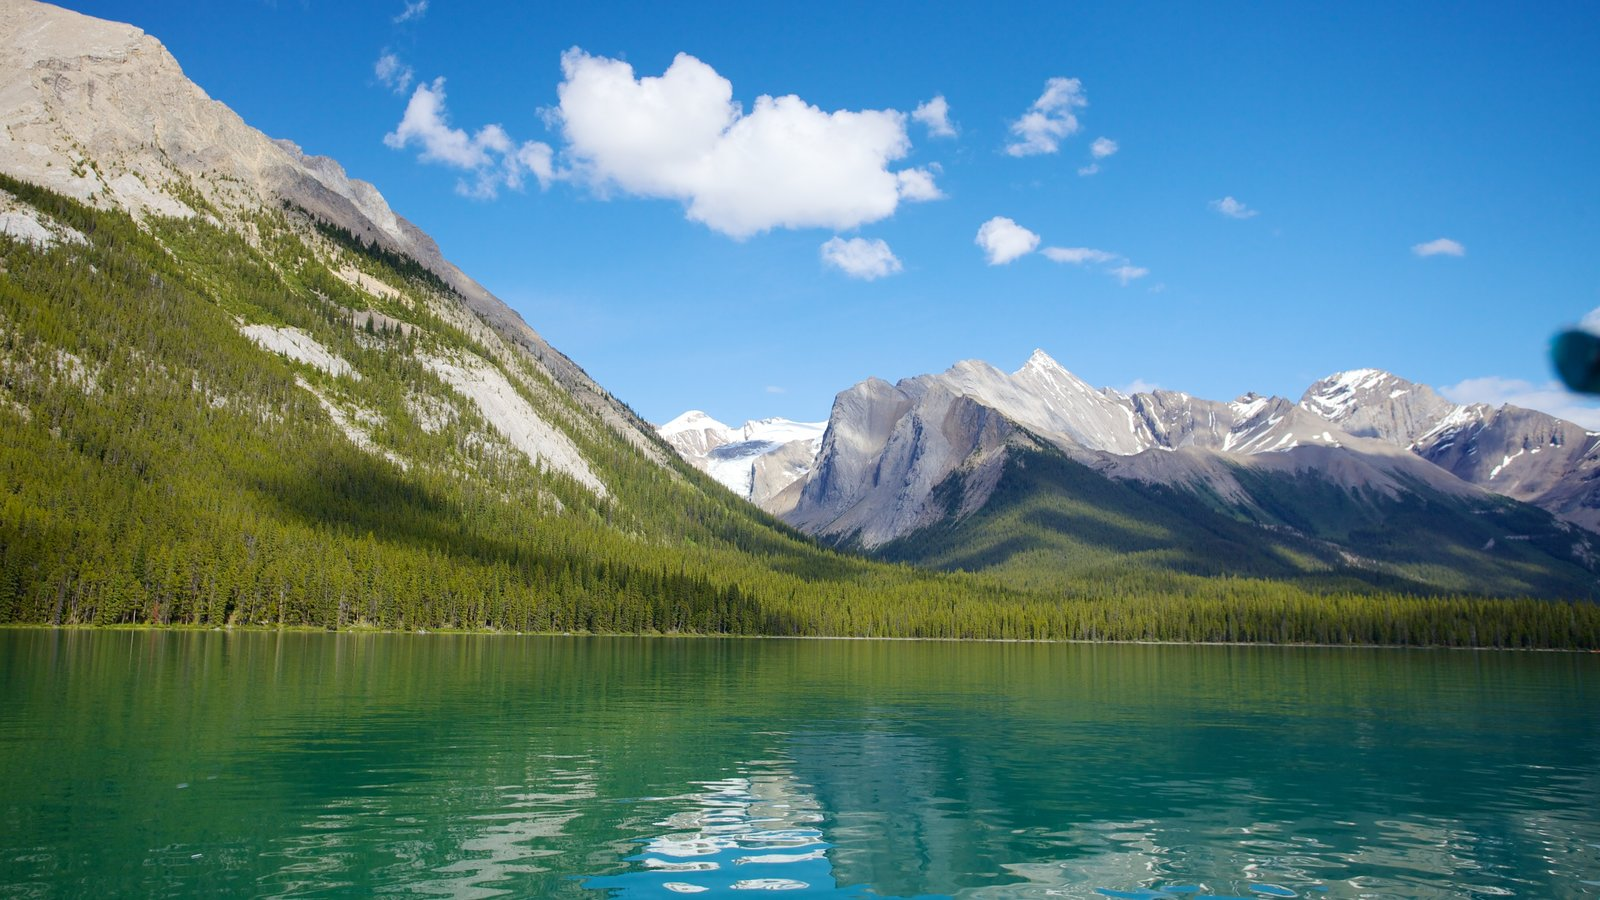 Maligne Lake showing a lake or waterhole, mountains and landscape views